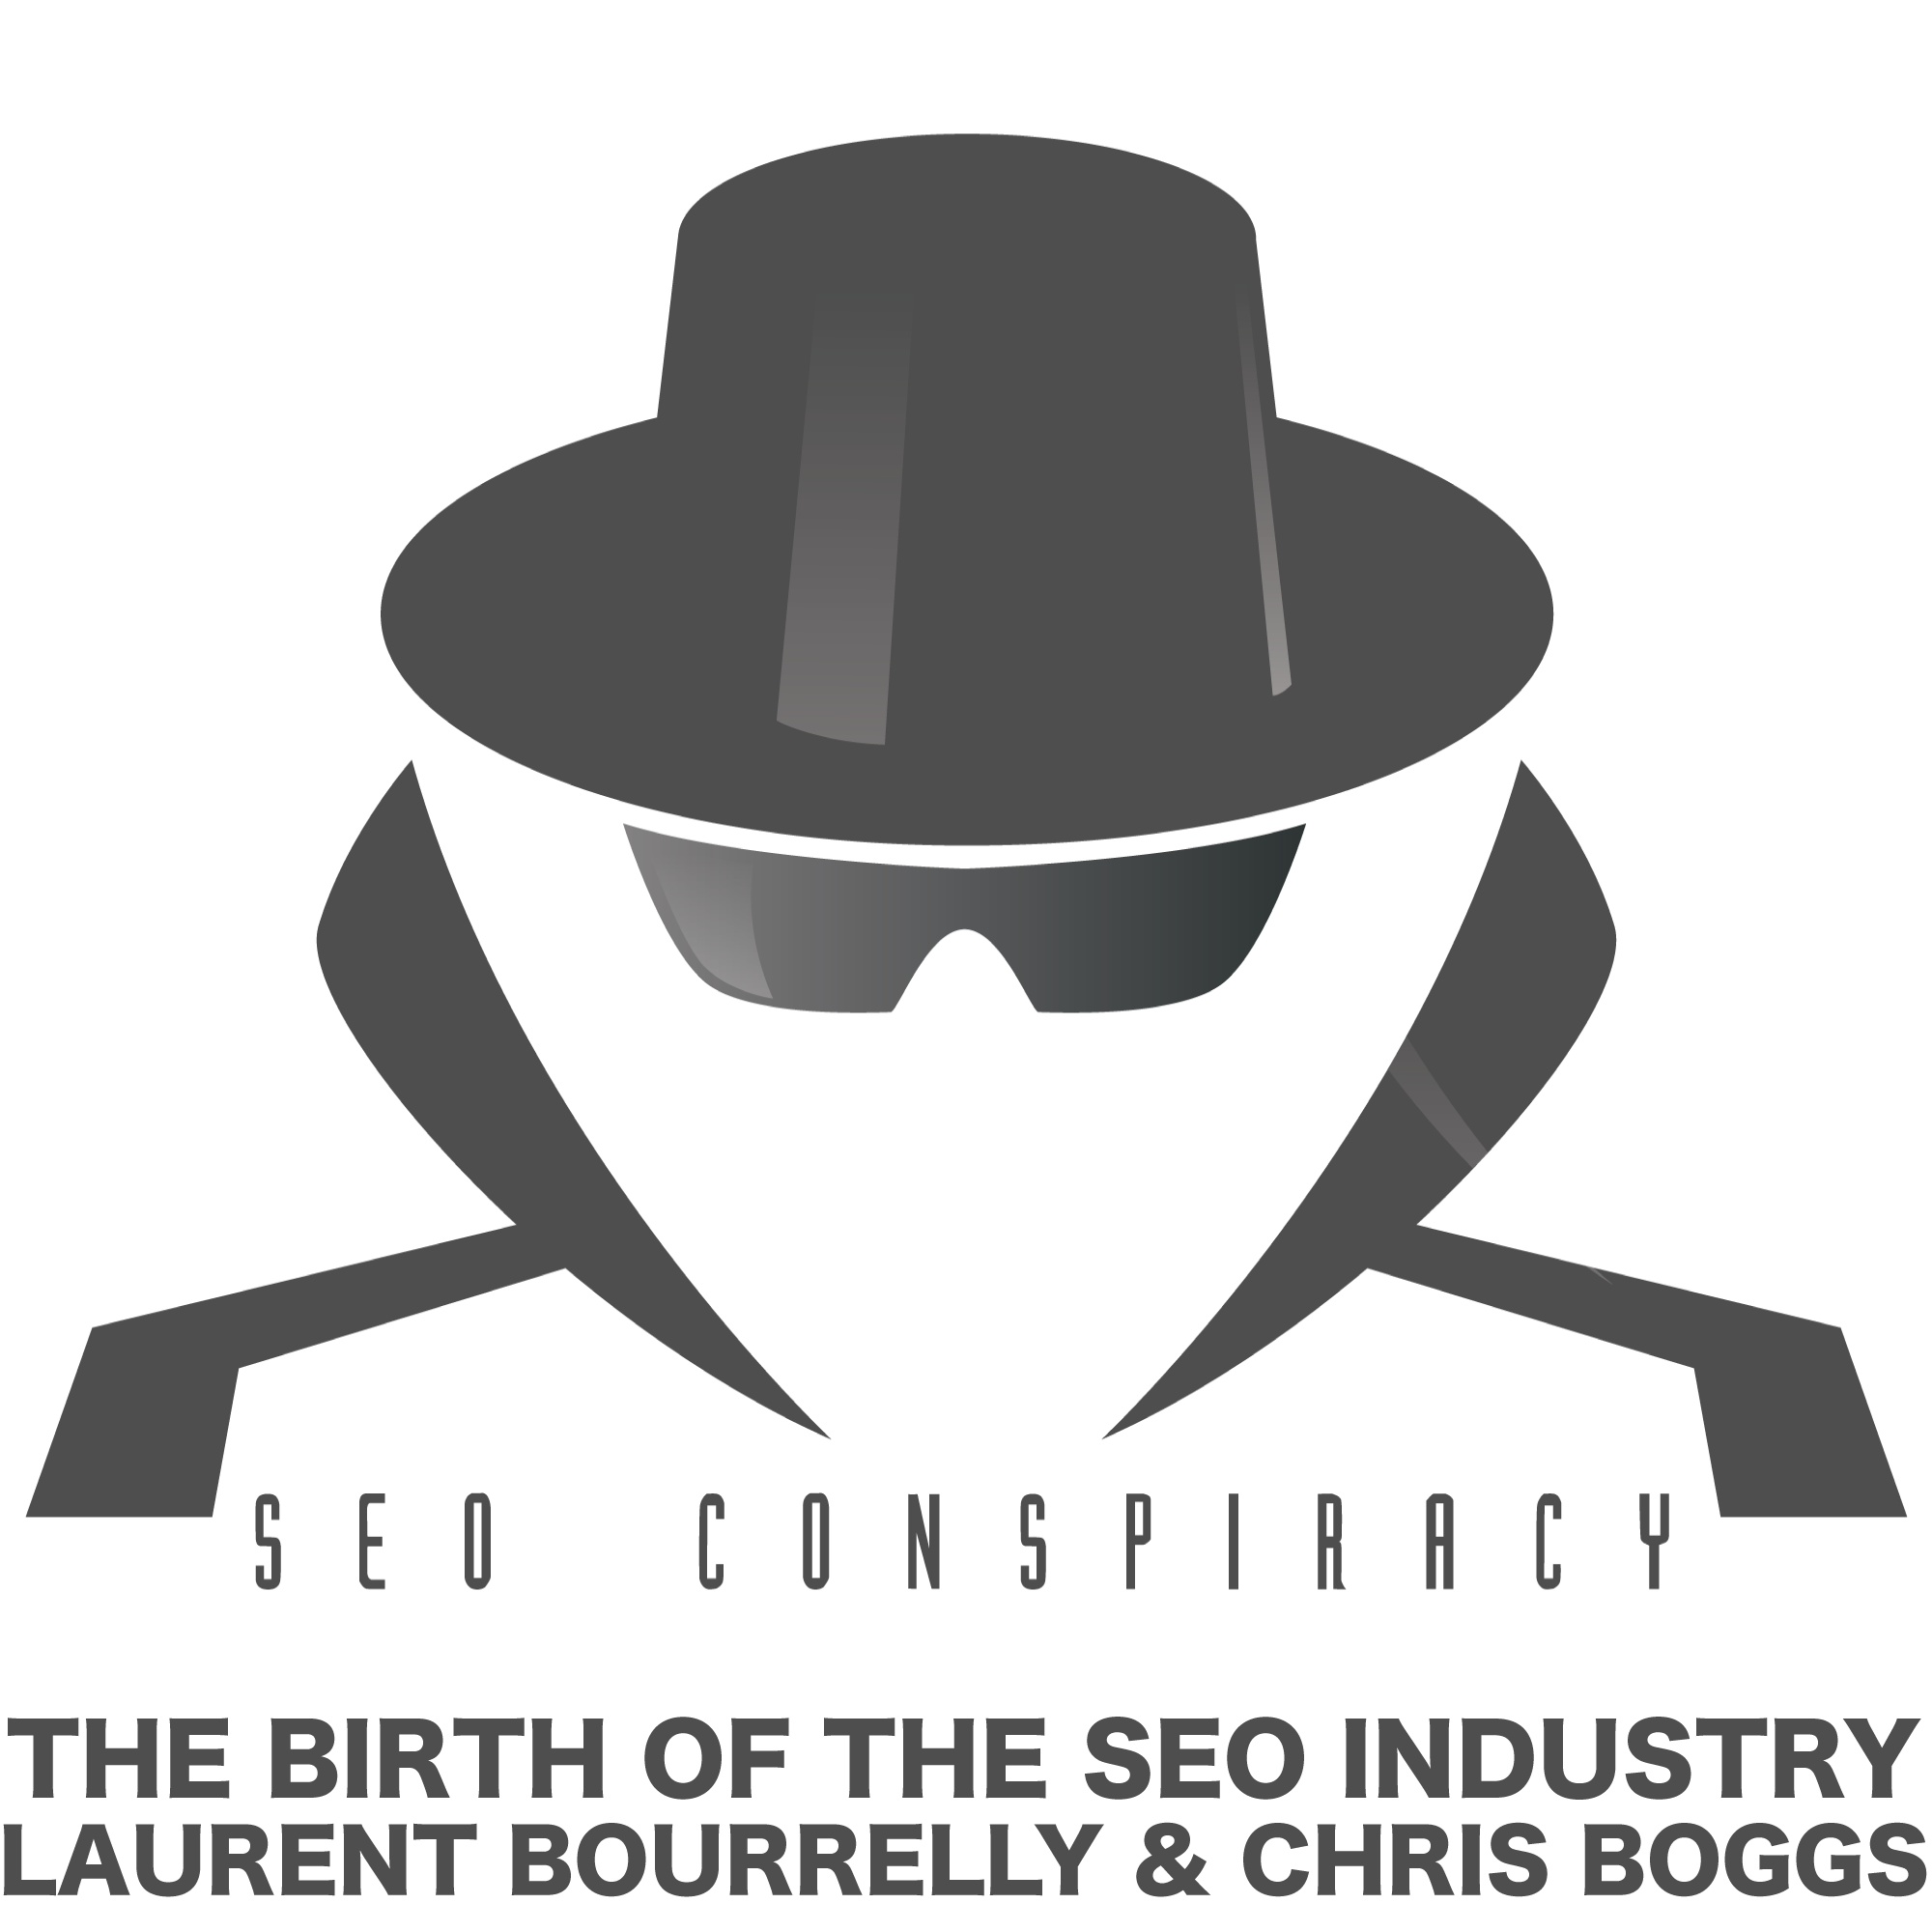 The Birth of the SEO Industry with Chris Boggs. Did you attend the Google Dance?